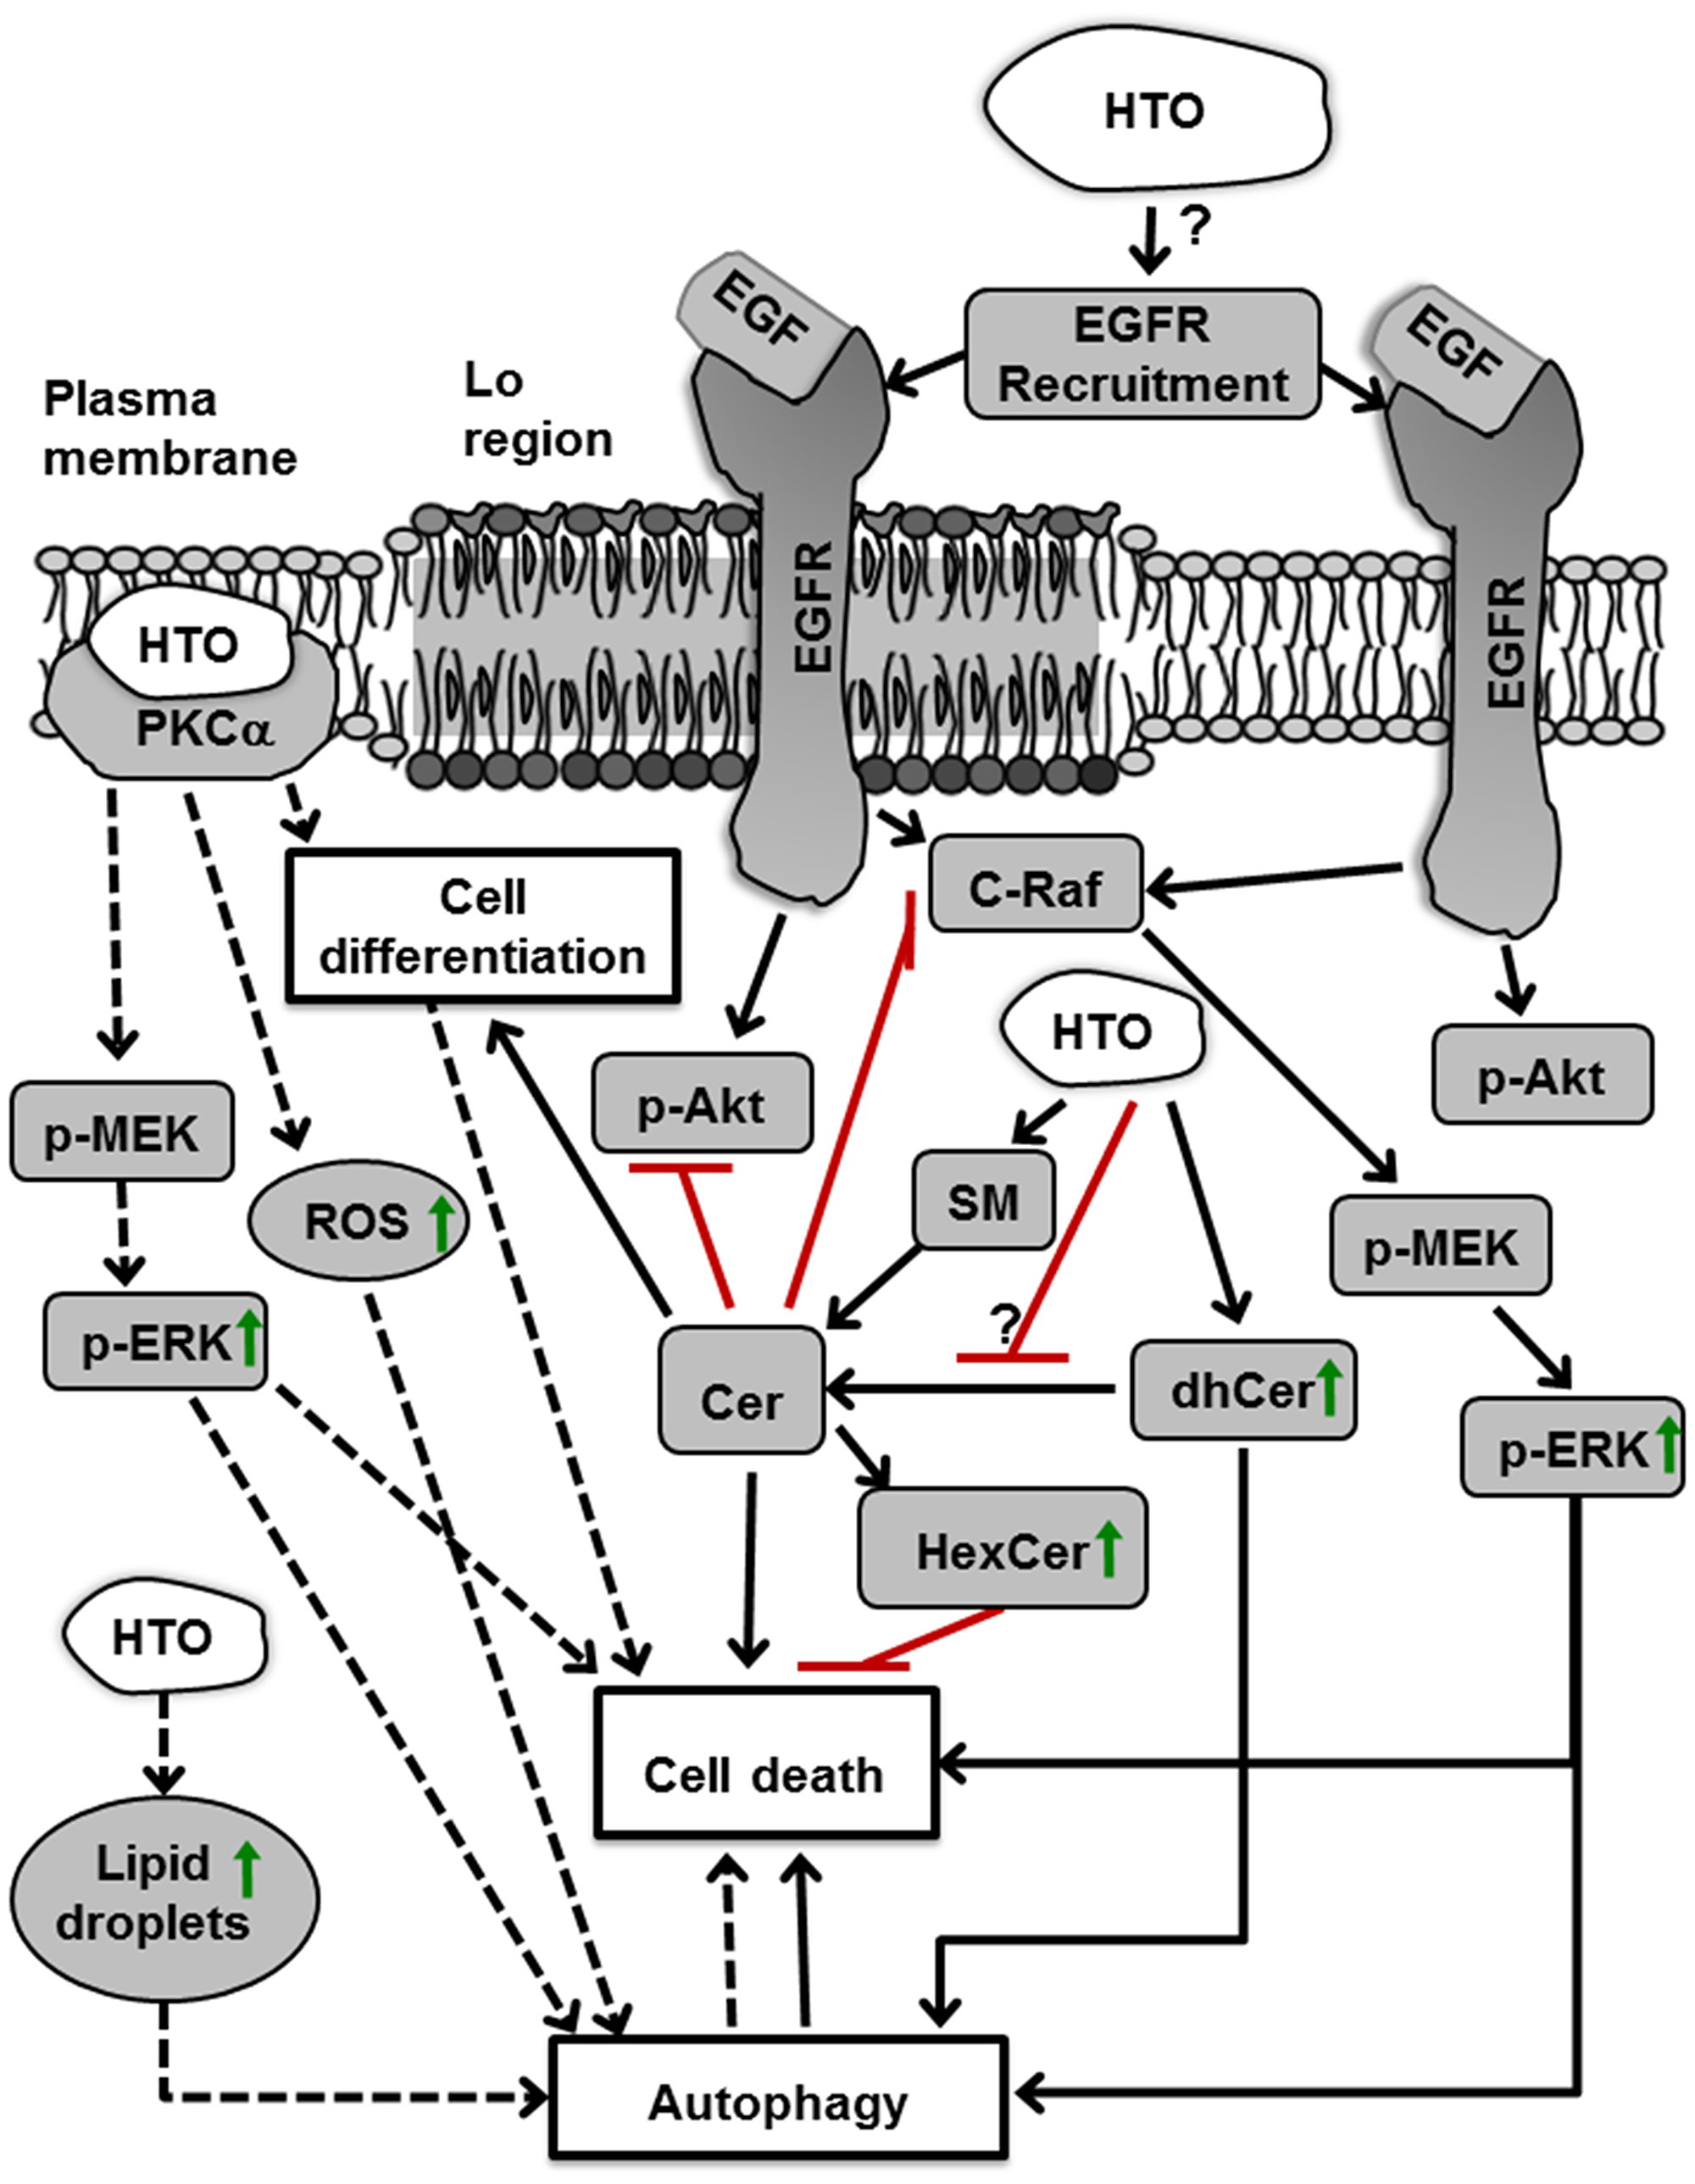 Molecular and cellular effects of HTO.